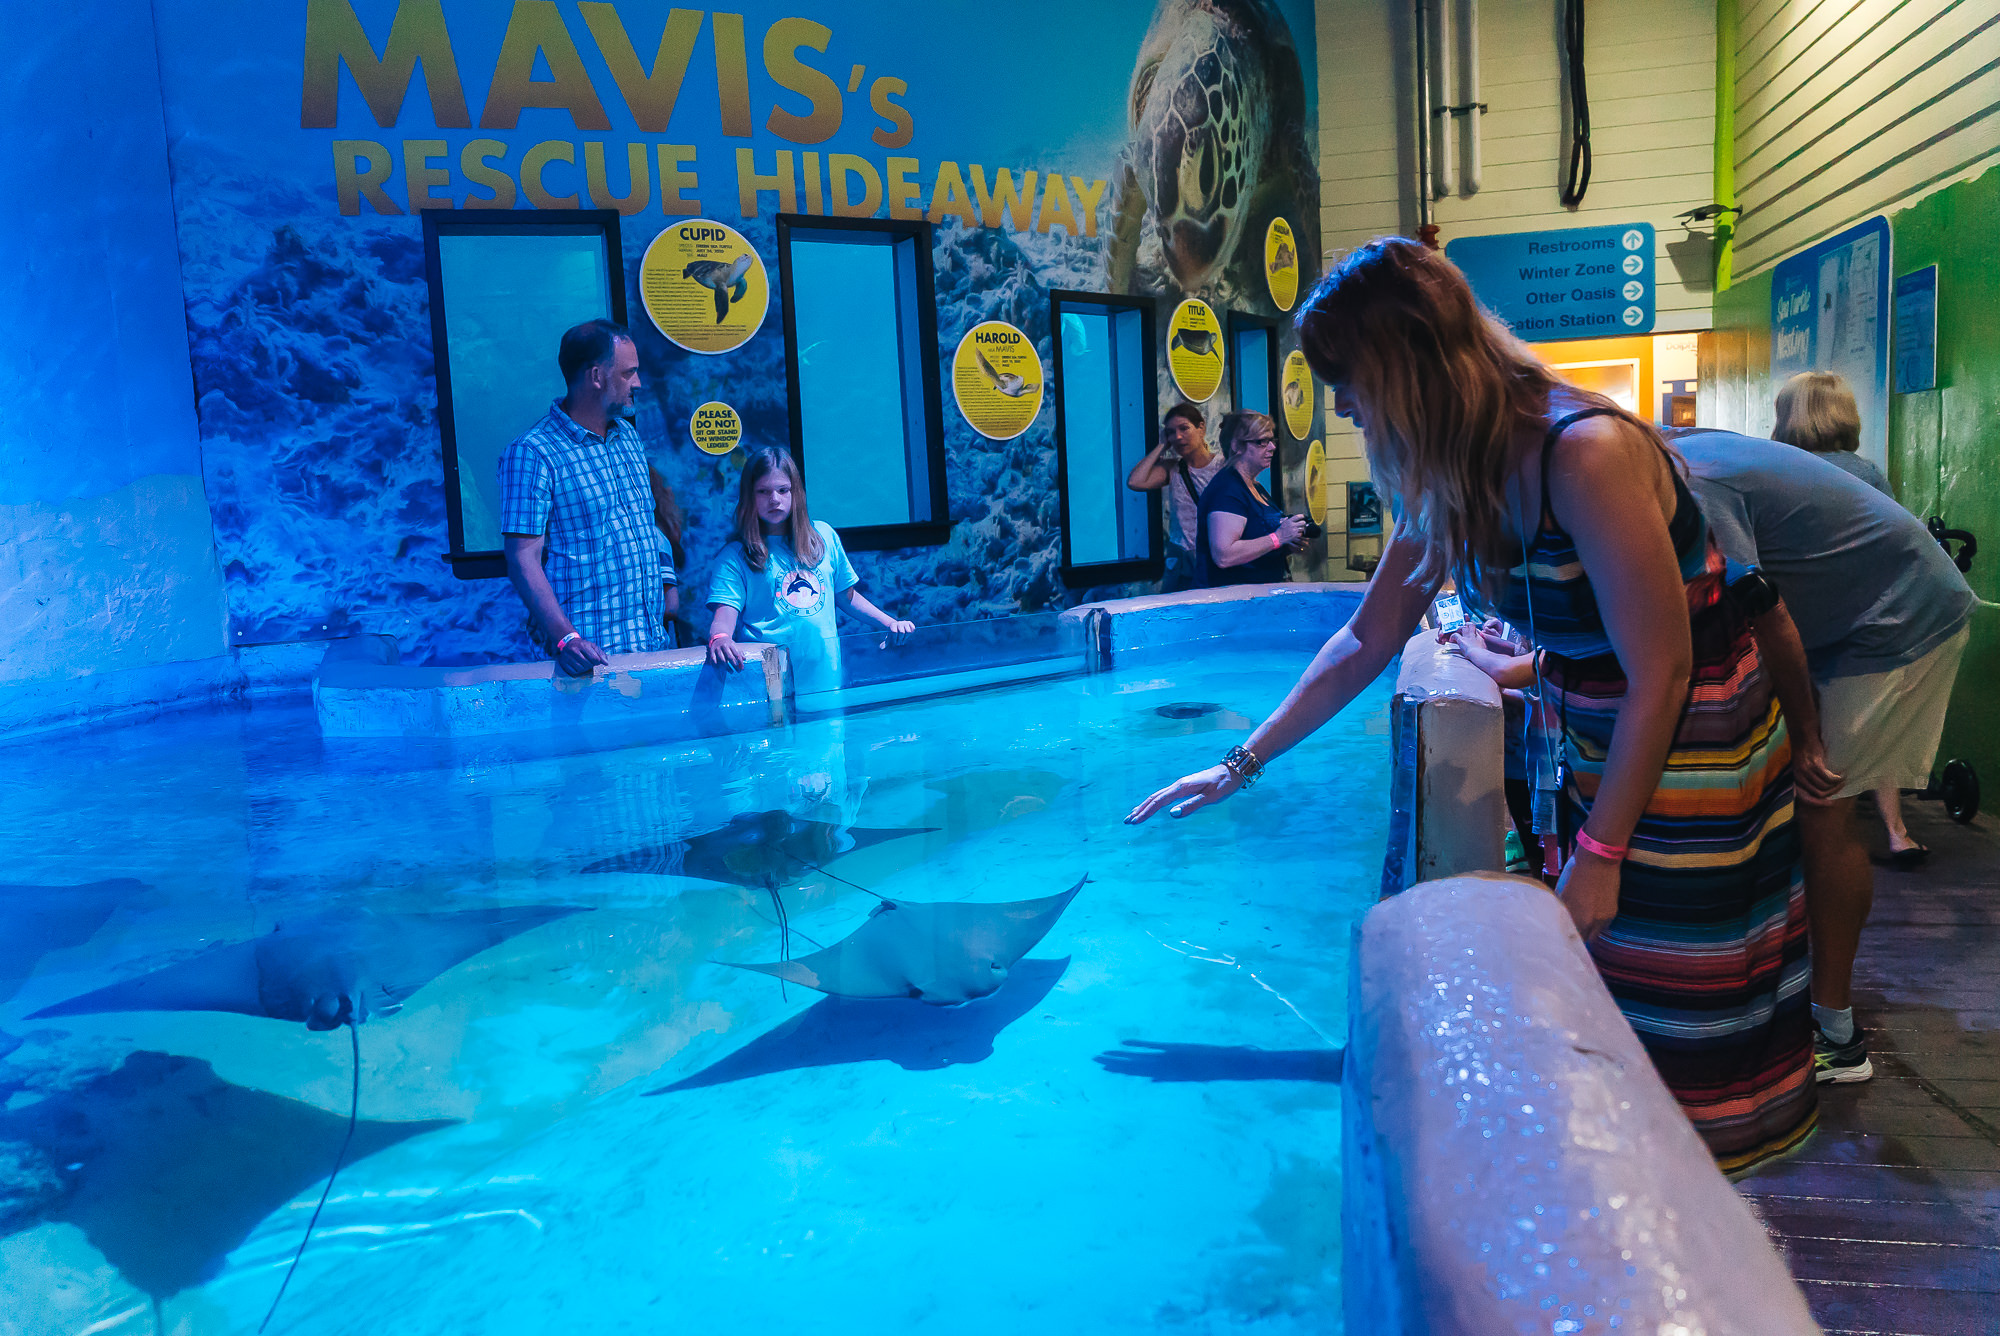 Trying to touch a sting ray.